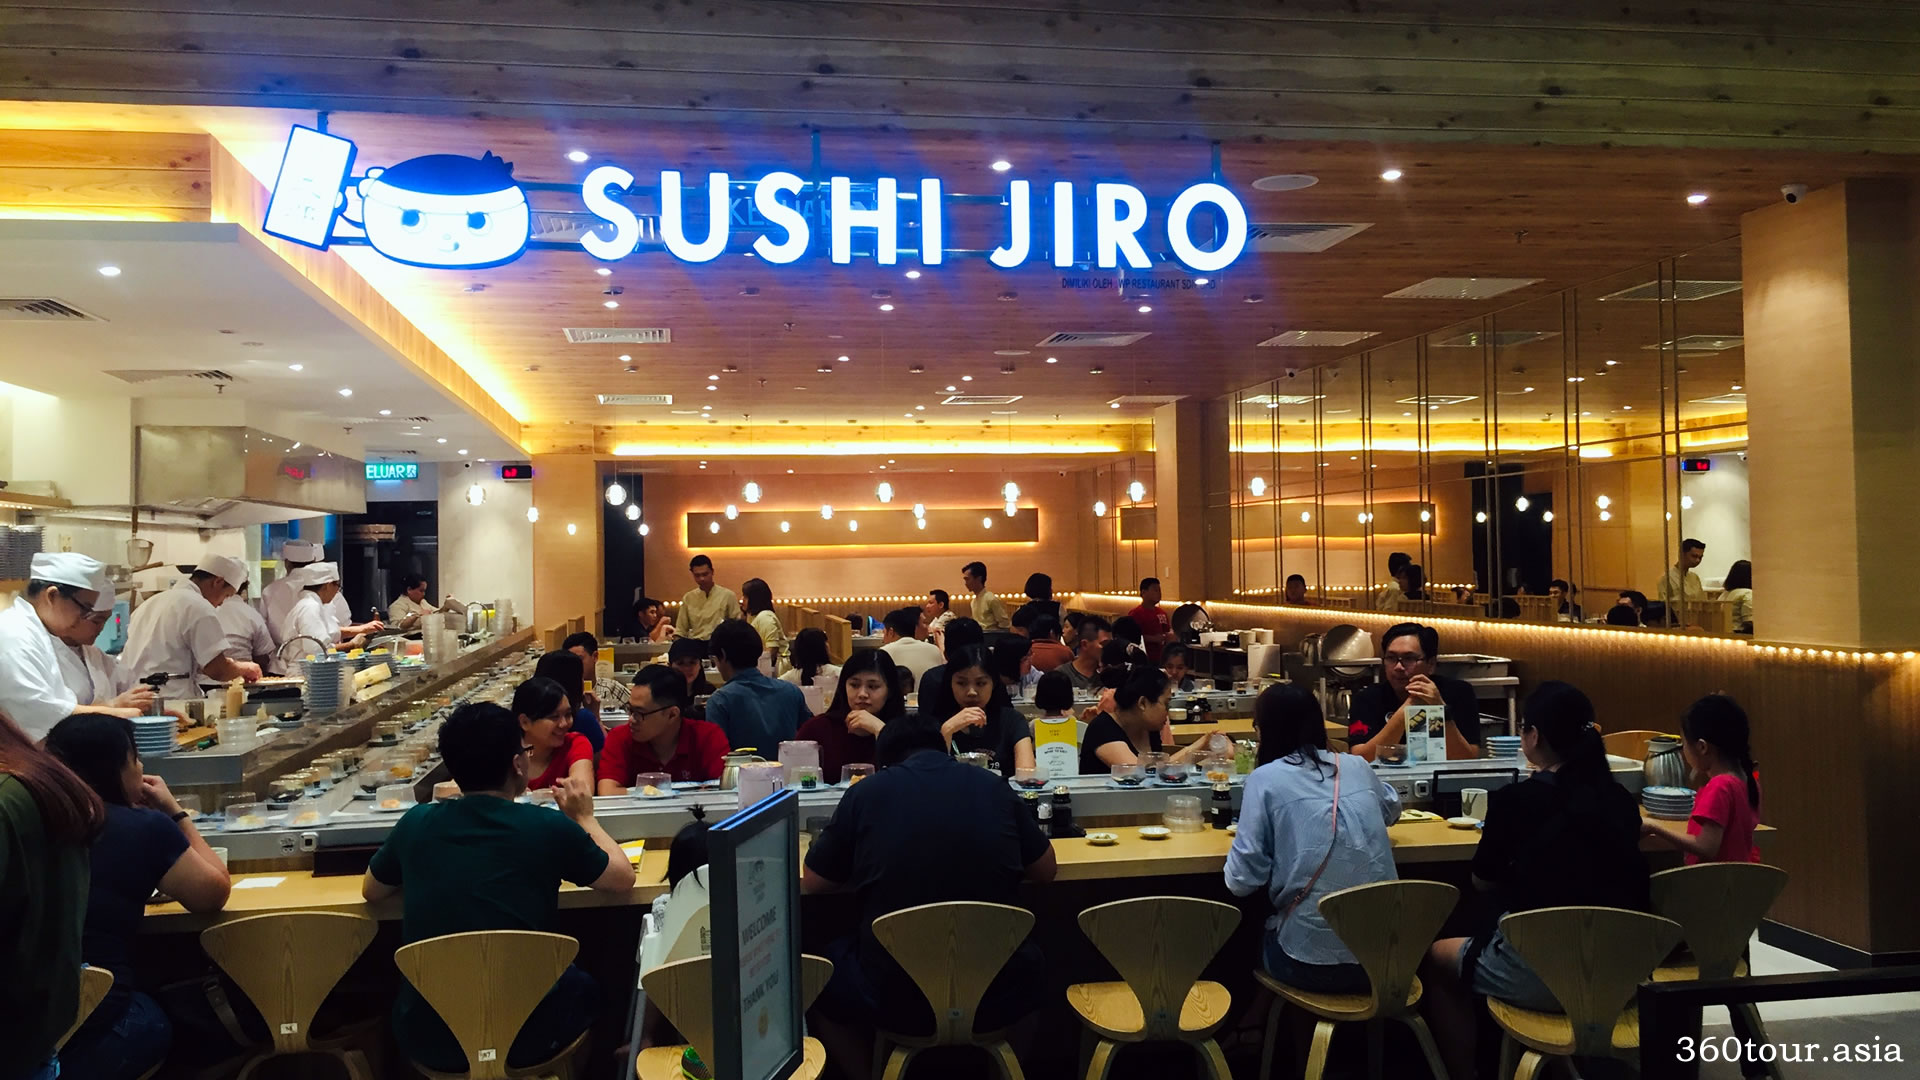 Sushi Jiro is now in Kuching at Vivacity Megamall Kuching